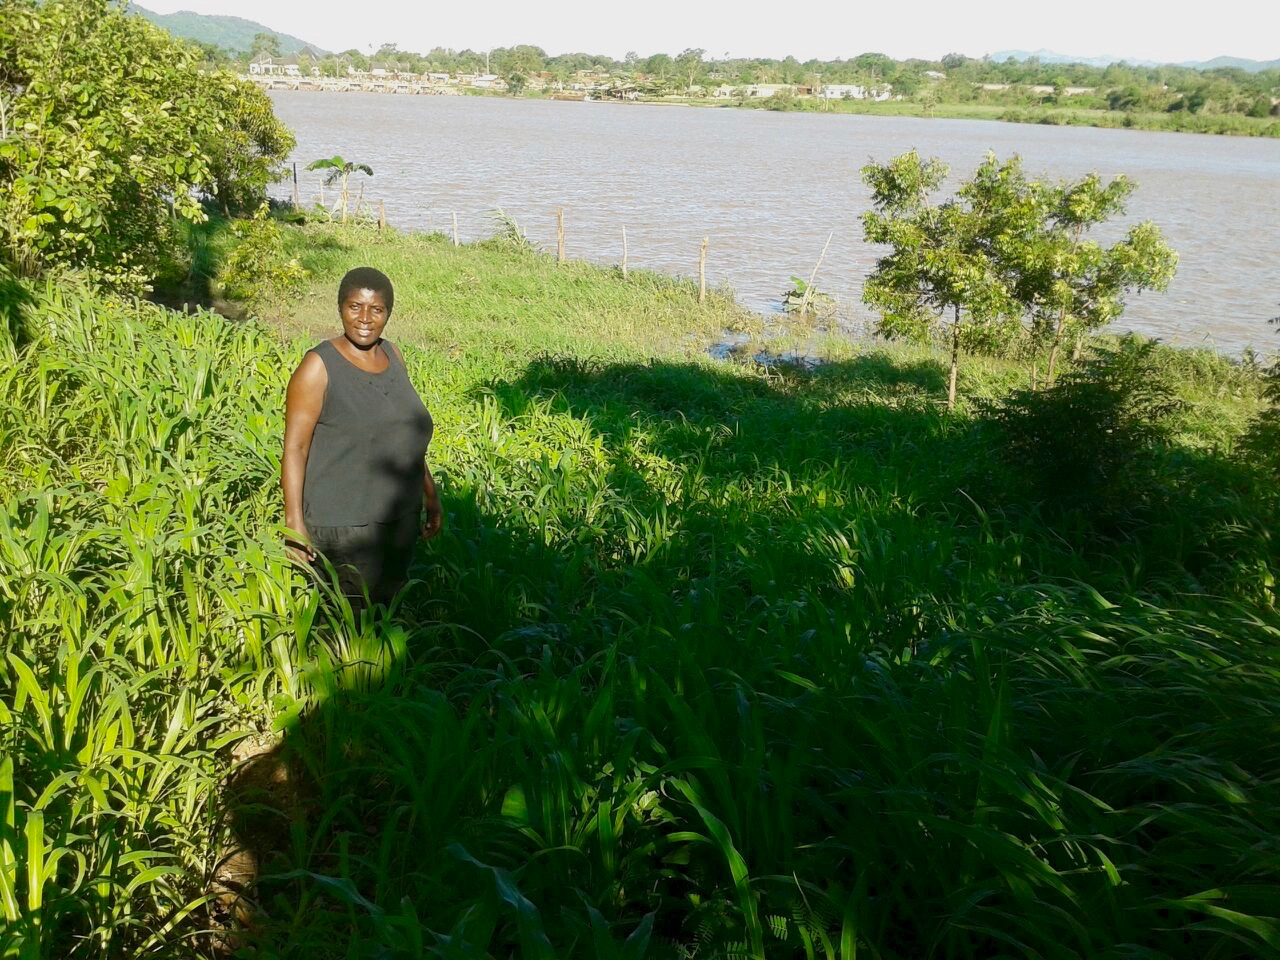 The simple yet effective hippo fence seen along the river prevents the hippos from eating their food.